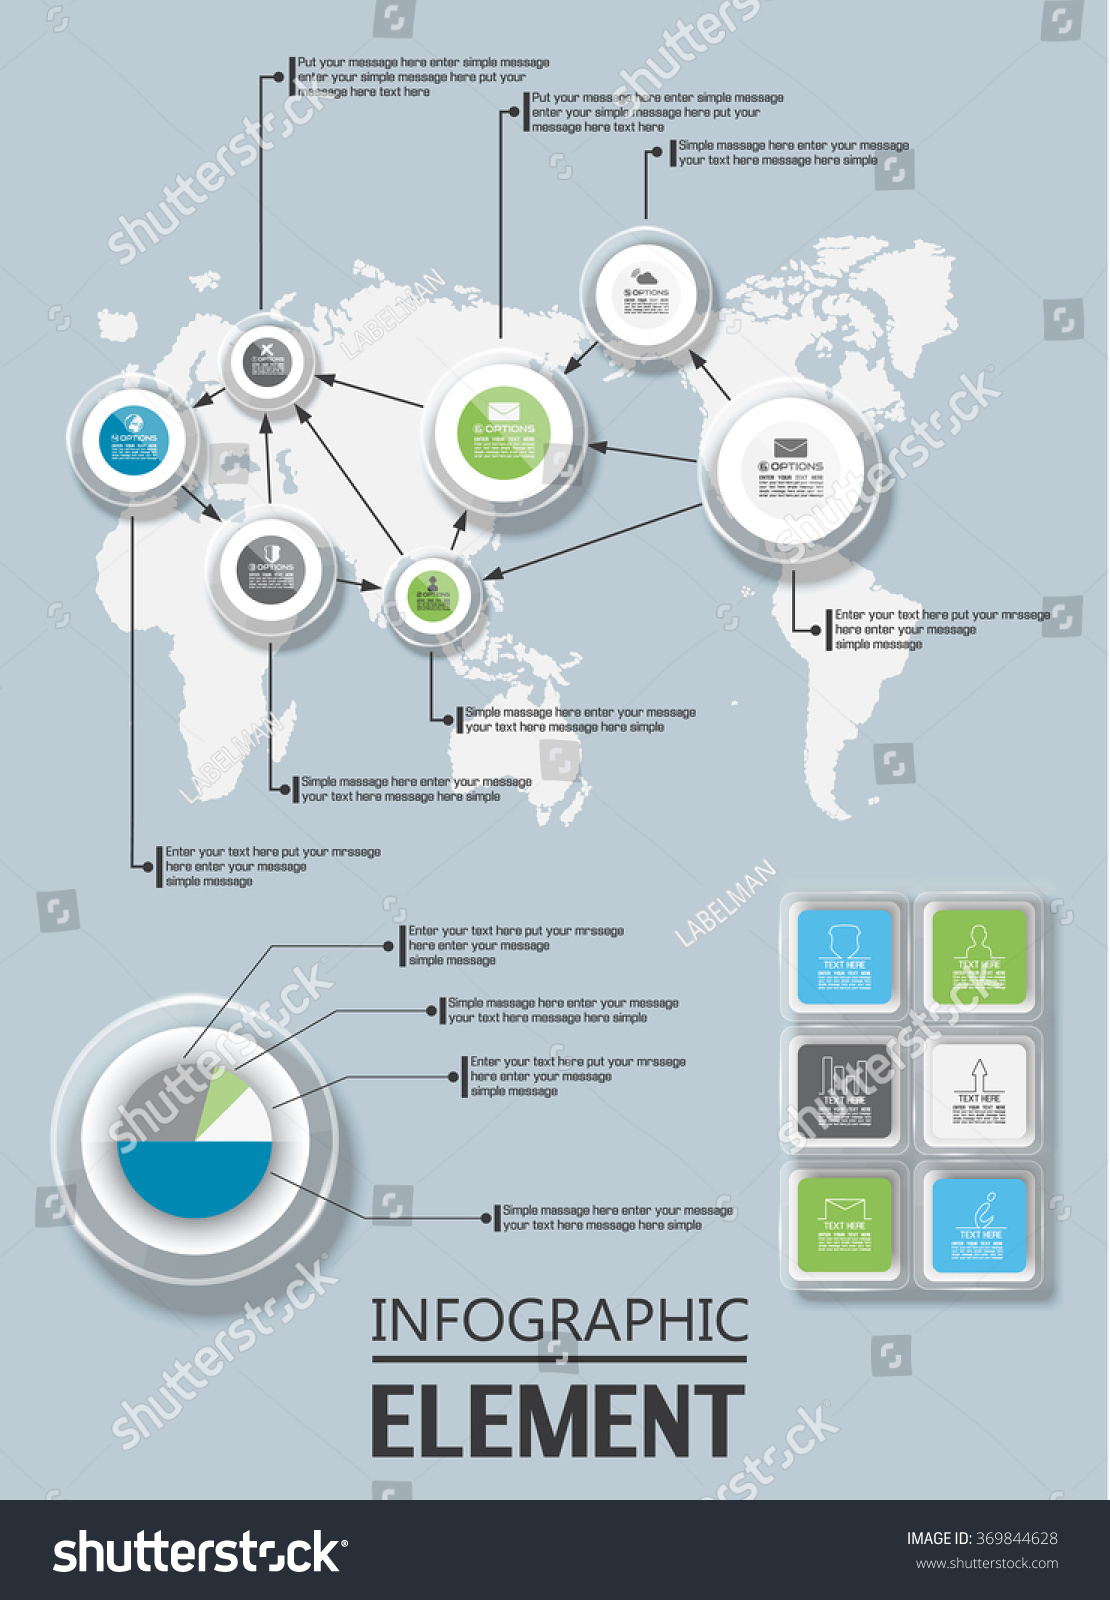 ELEMENT FOR INFOGRAPHIC CHART TEMPLATE WORLD MAP 369844628 – Element Chart Template